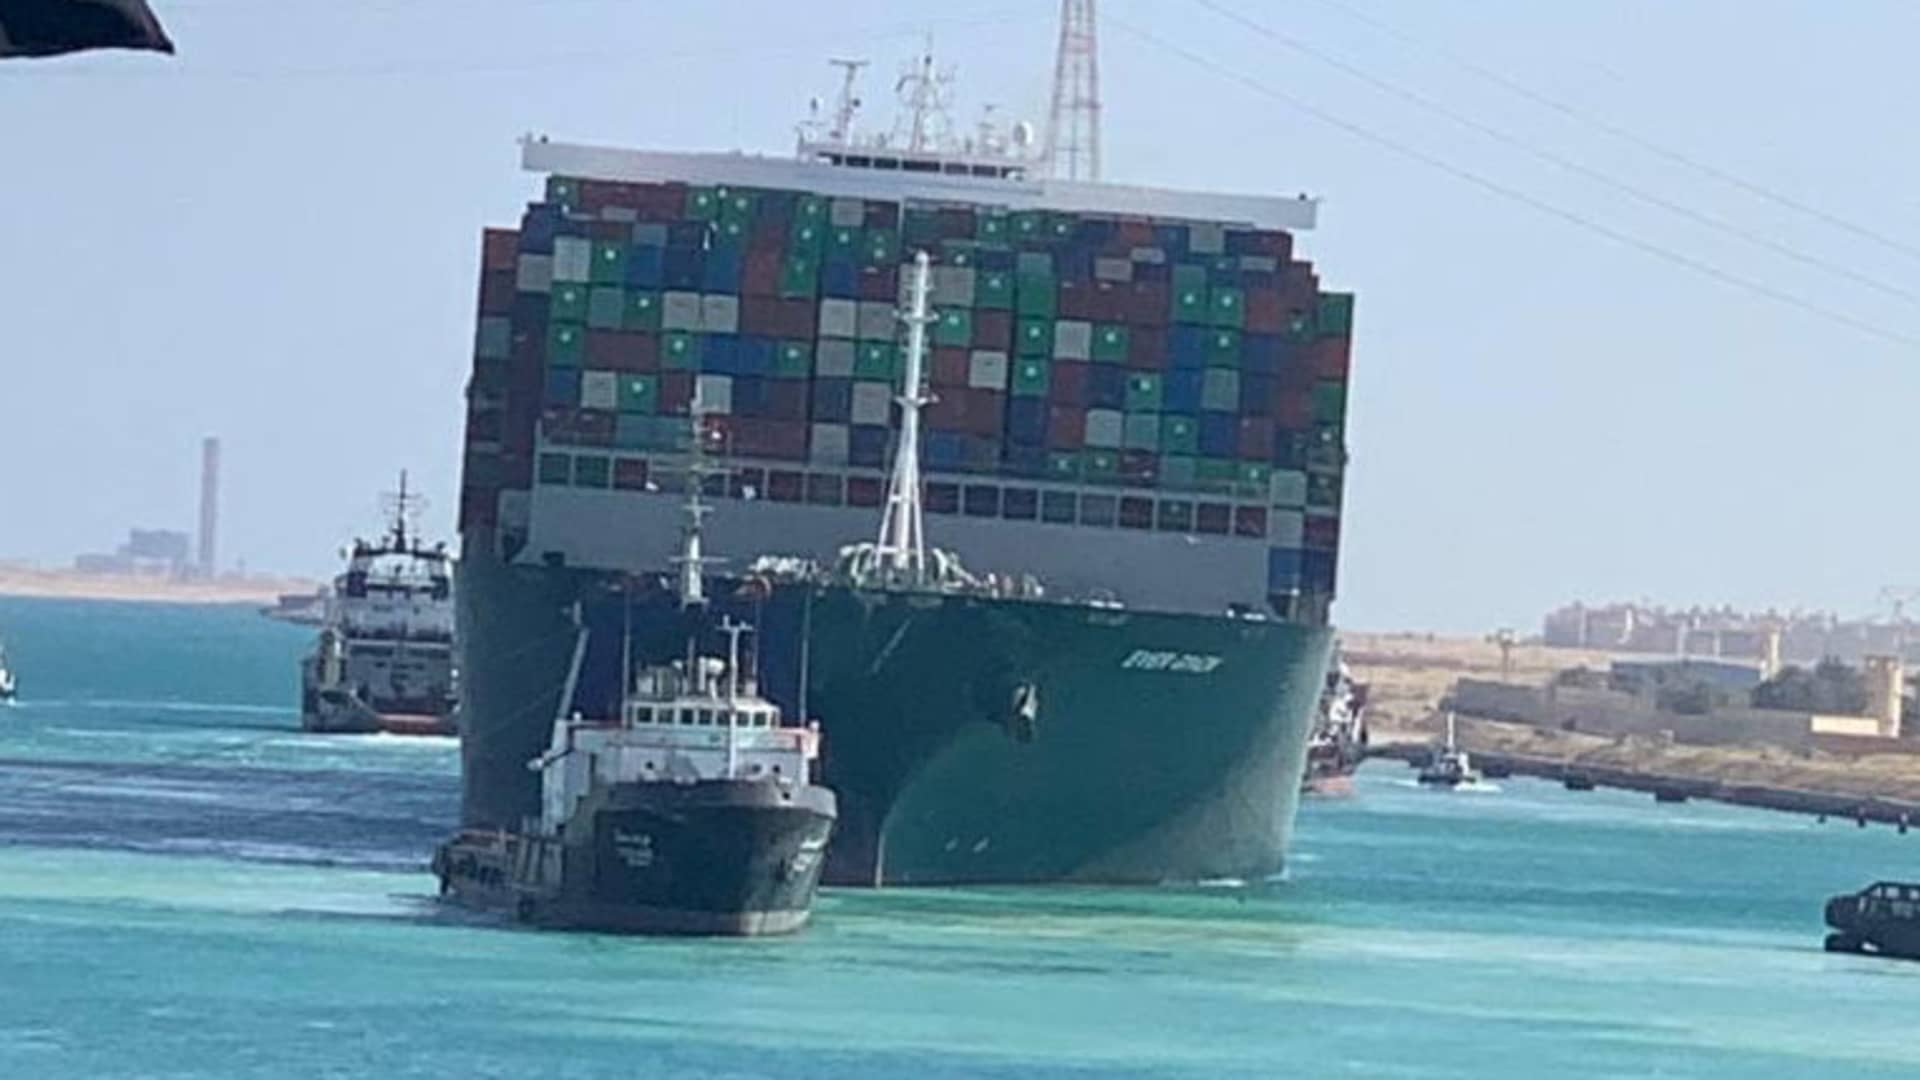 Ship Ever Given, one of the world's largest container ships, is seen after it was fully floated in Suez Canal, Egypt March 29, 2021.